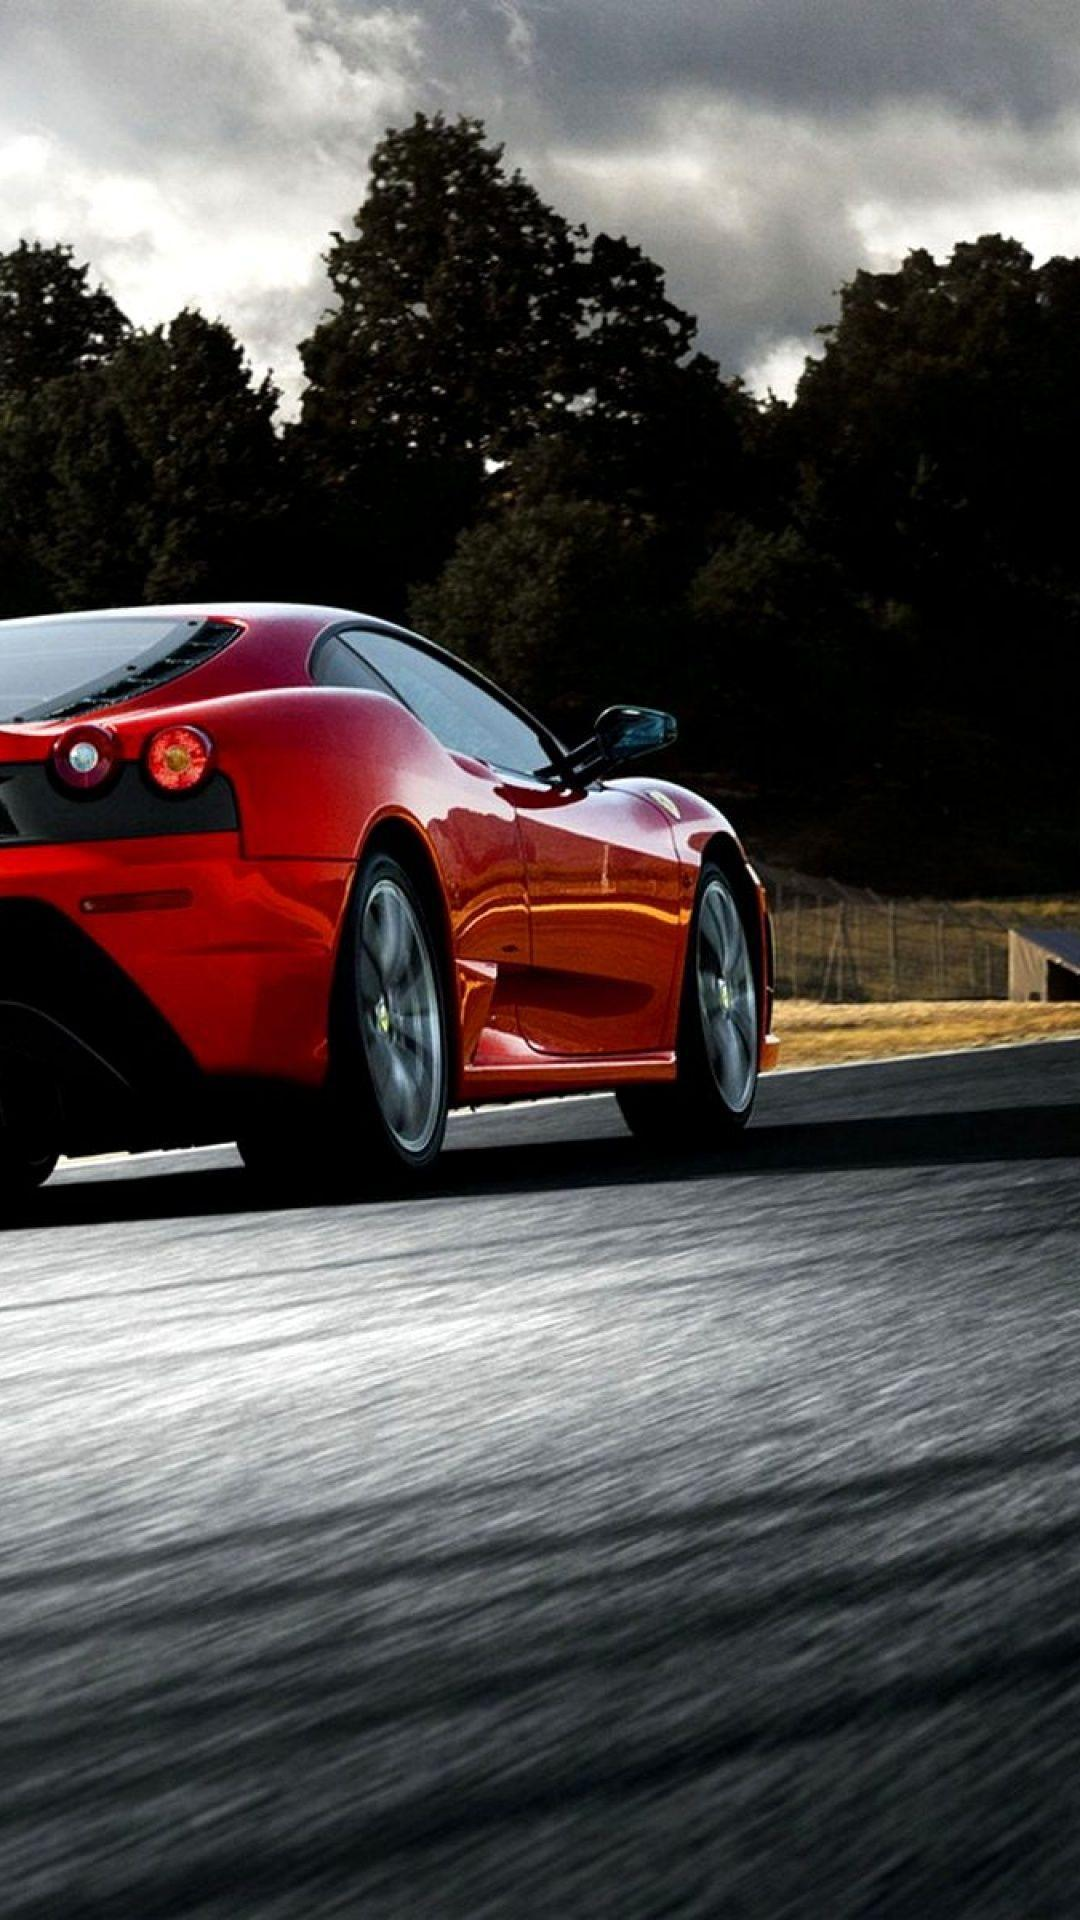 Ferrari F430 Scuderia S4 Wallpapers